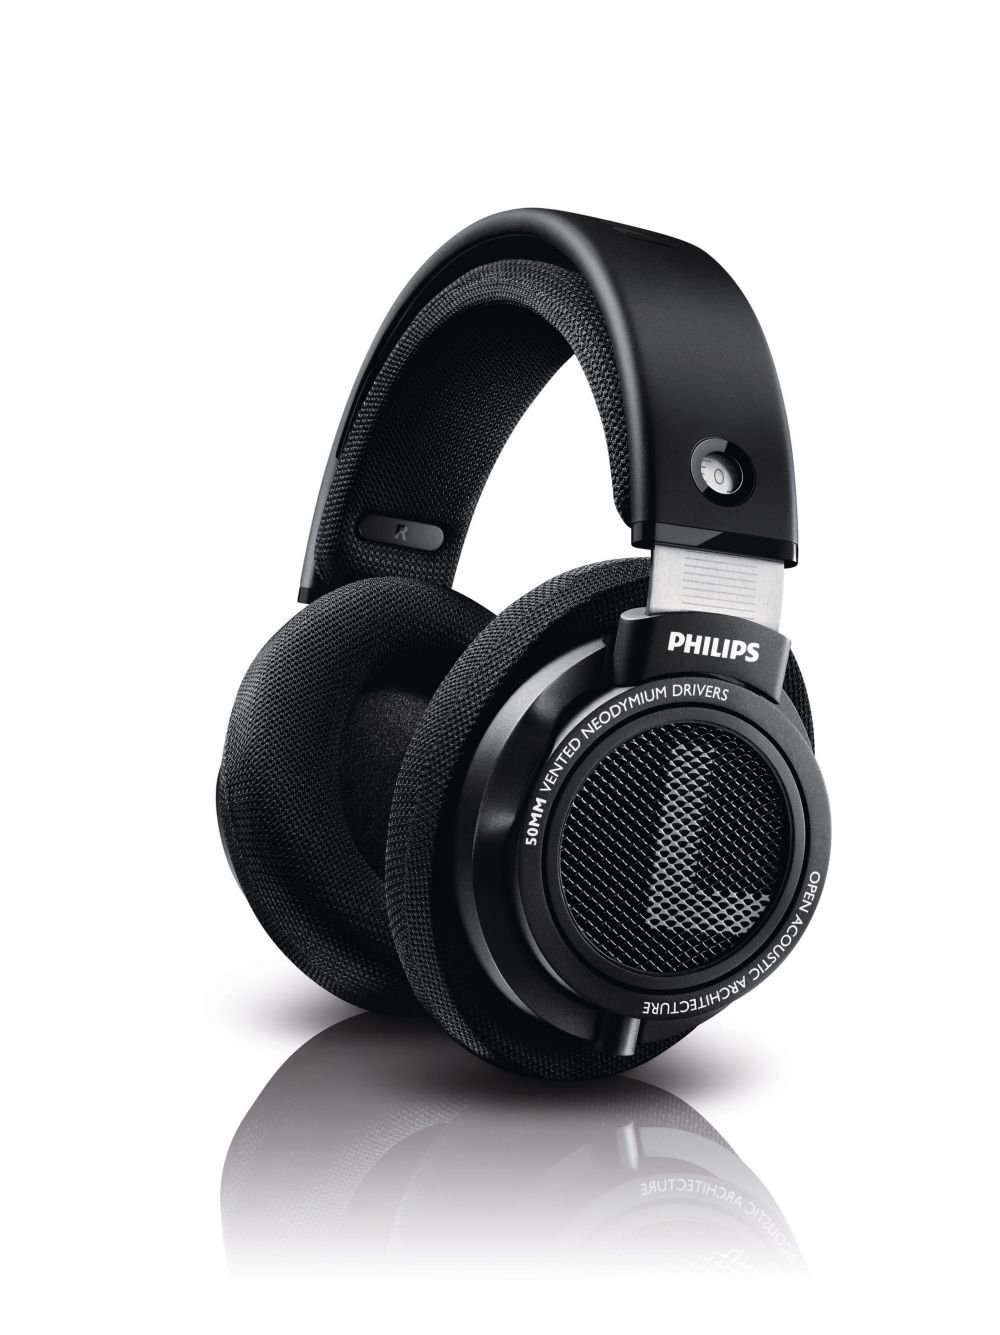 Philips HiFi Precision Over-ear Headphones